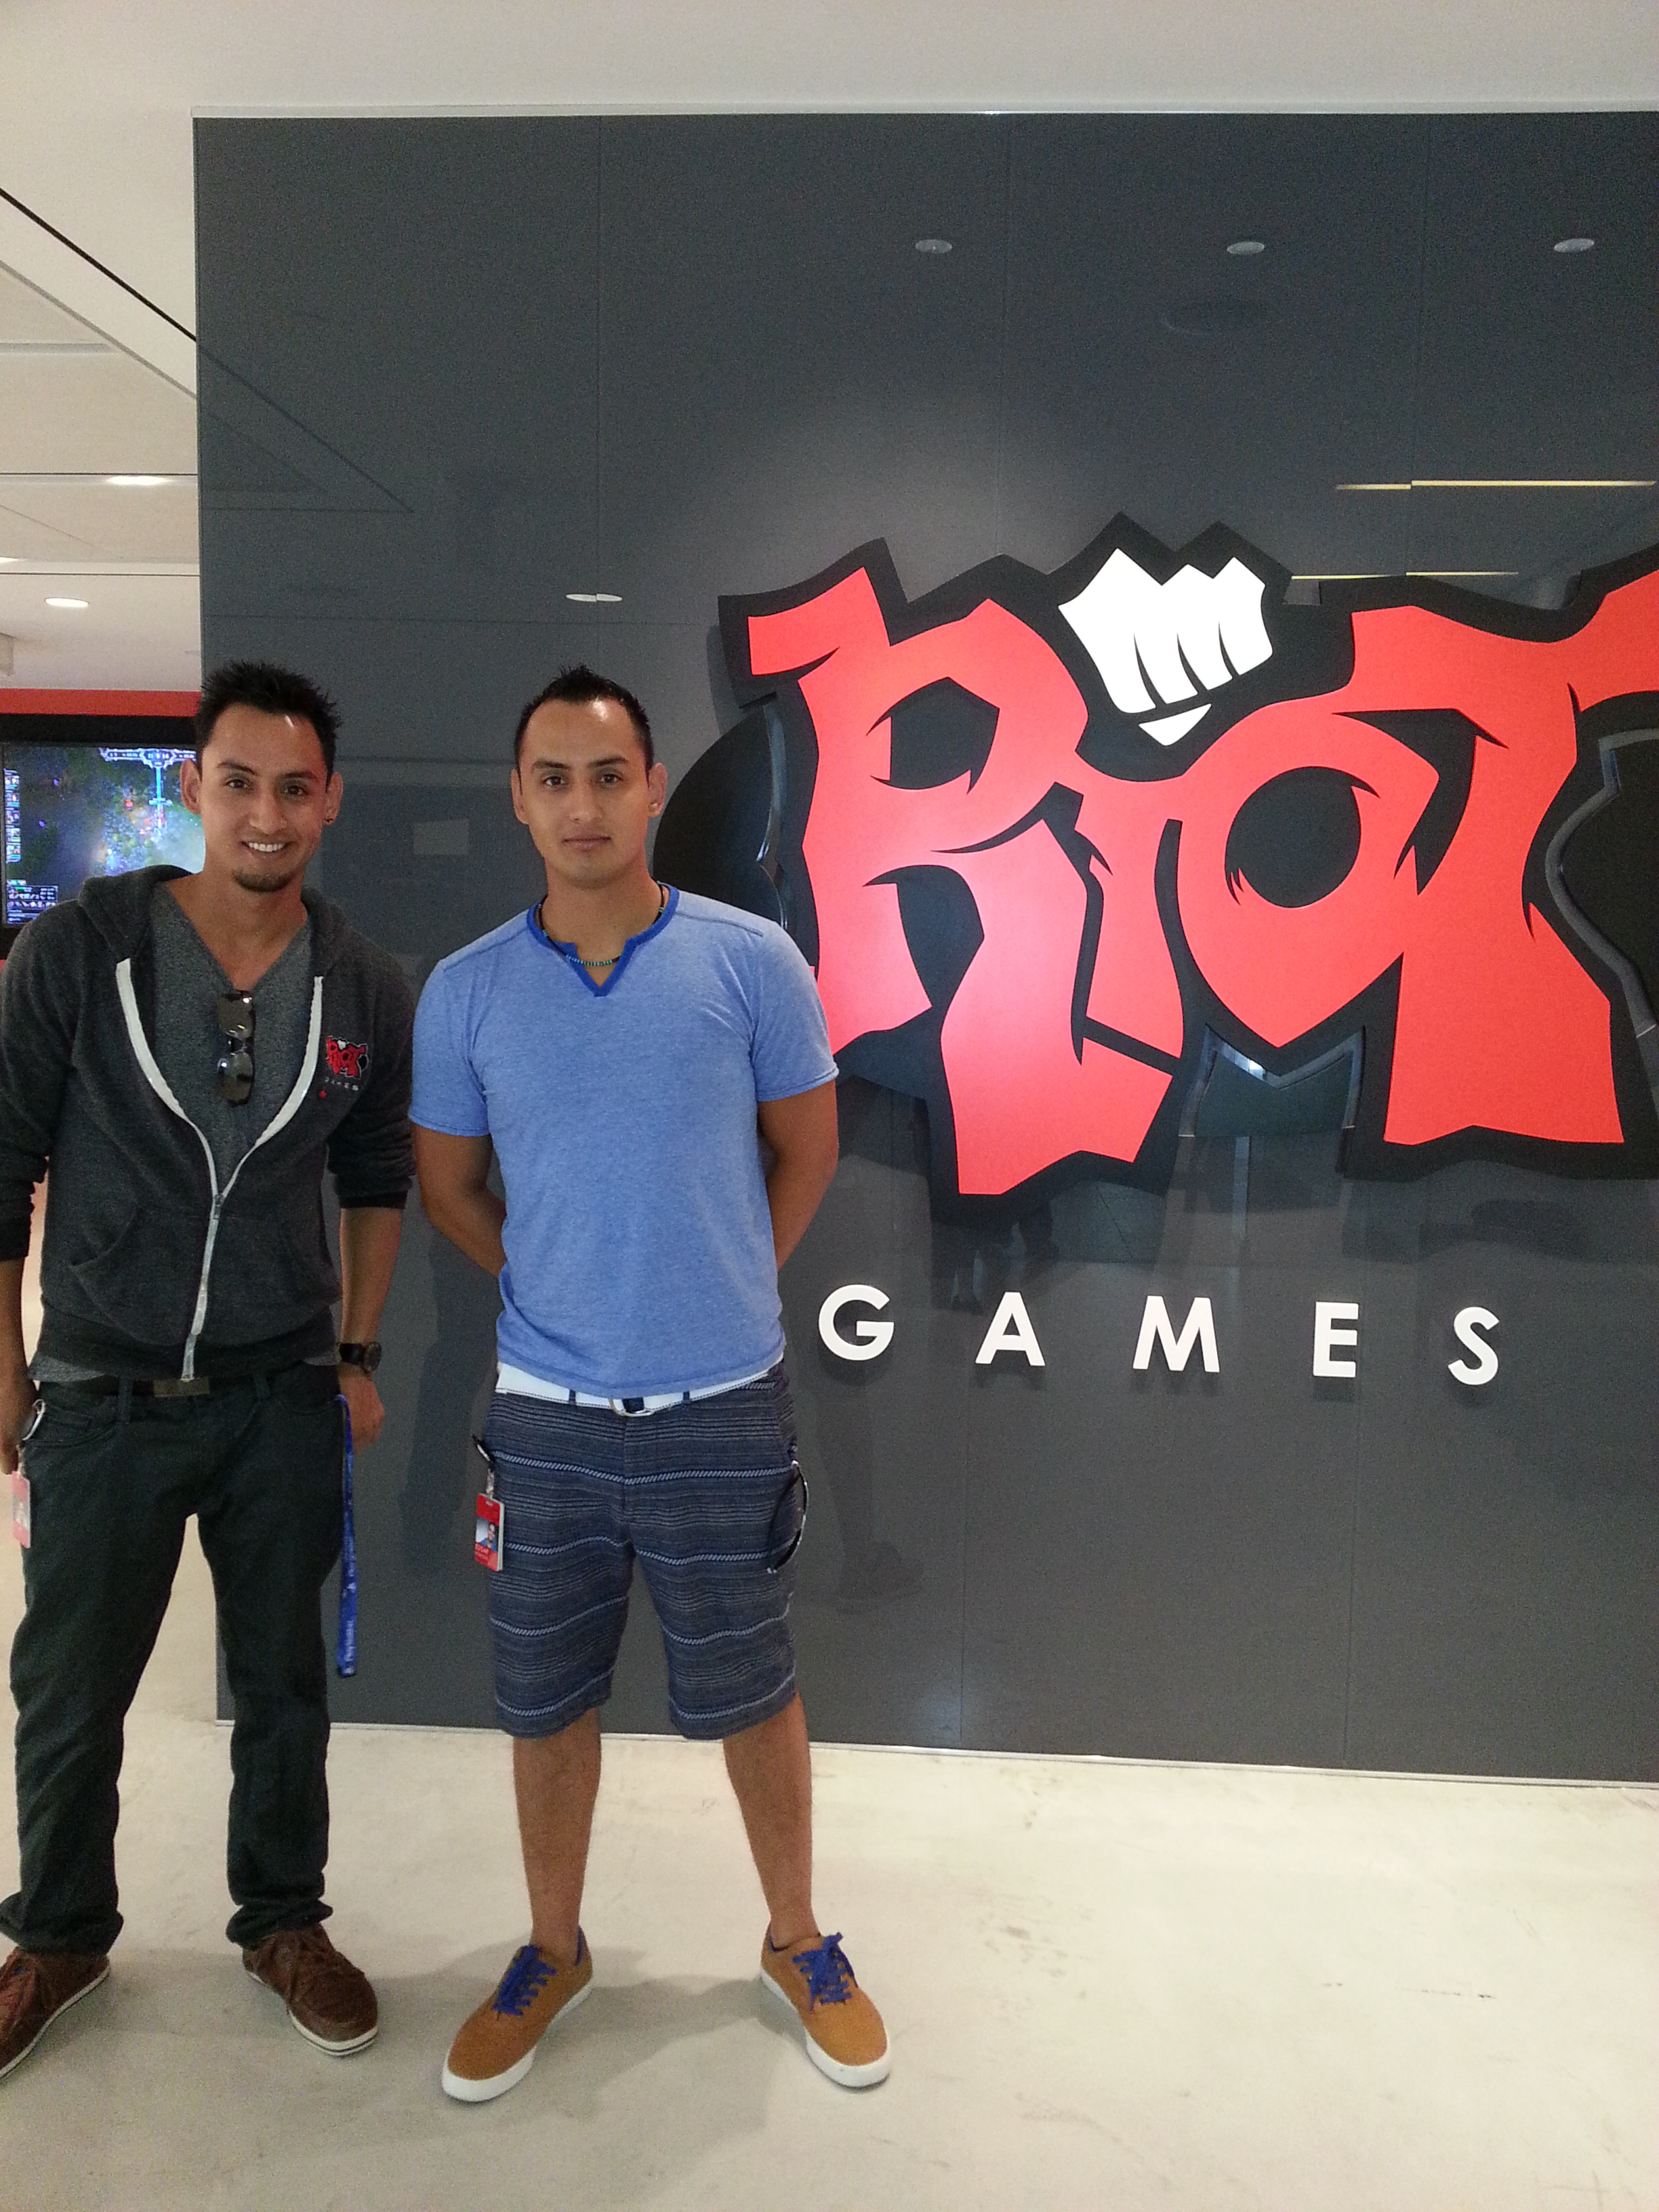 Identical twins Oscar and Edgardo Monteon '09 are designing video-game characters for Riot Games, designers of the award-winning online video game, League of Legends.